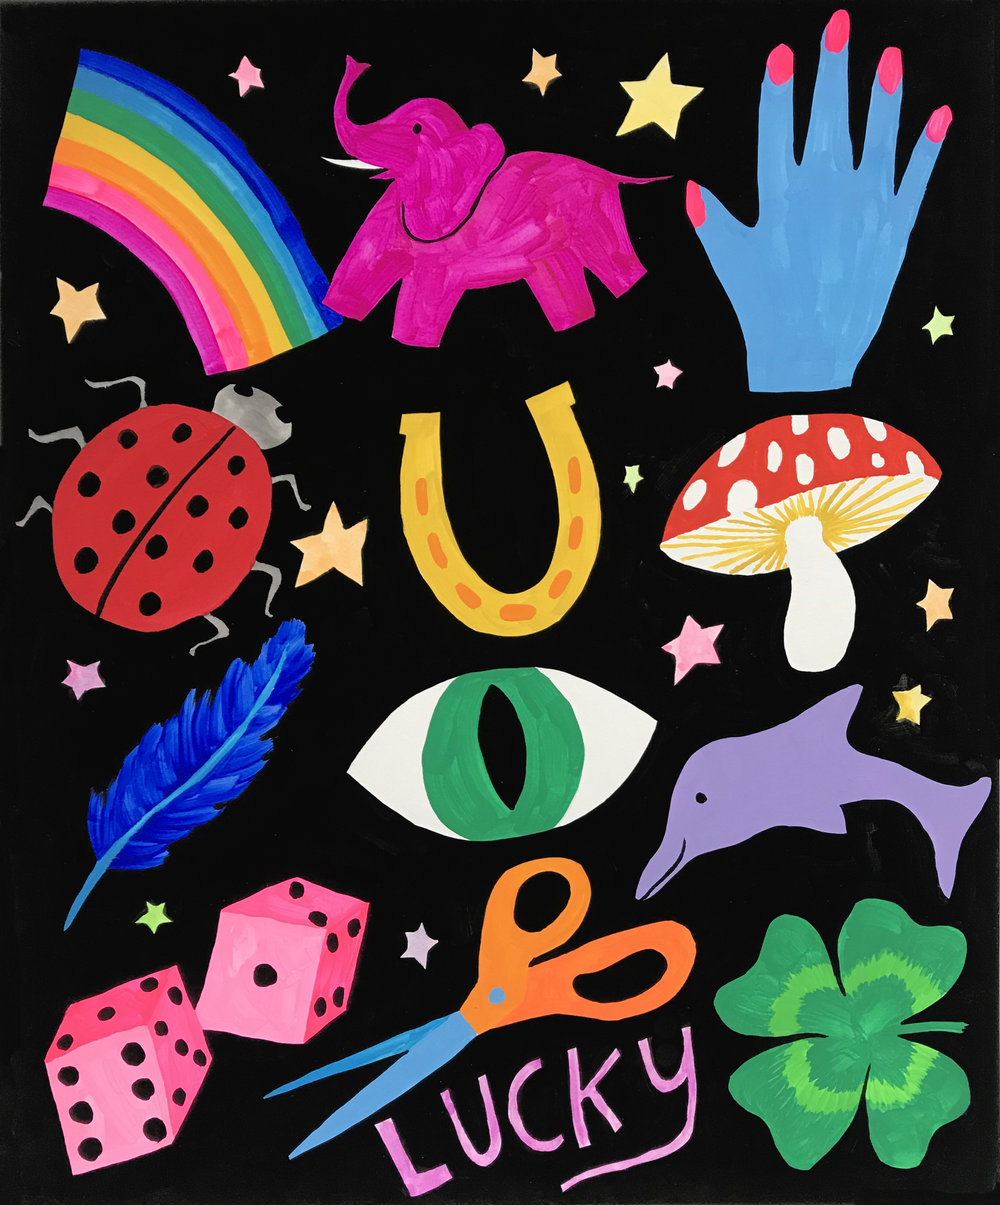 3 lucky charms poster.jpg